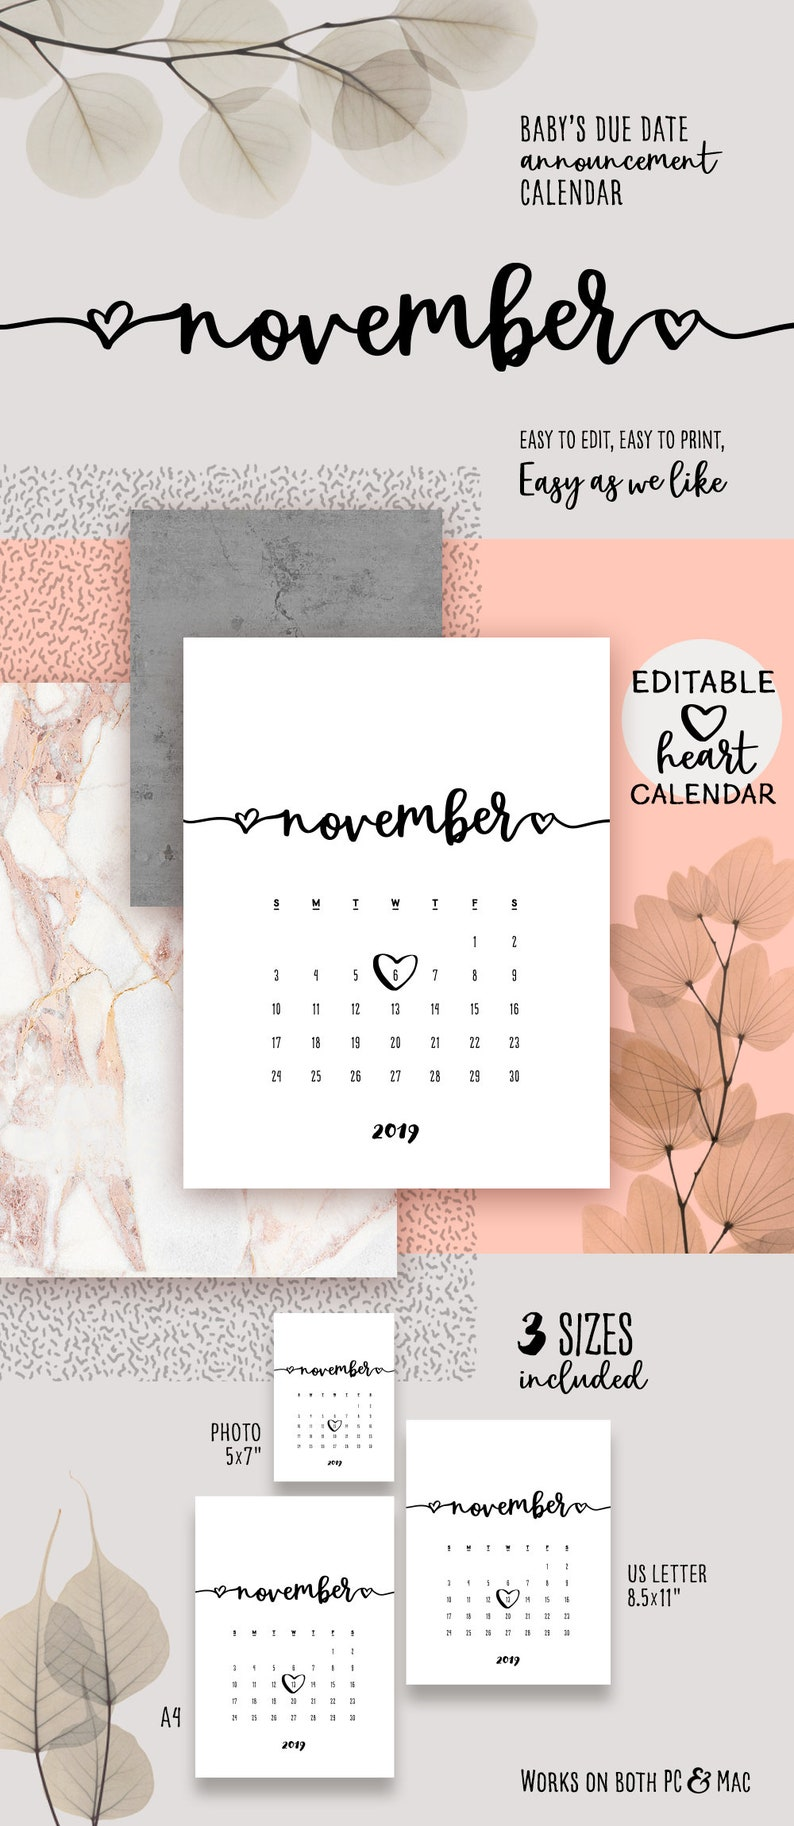 picture about Printable Pregnancy Calendar identify NOVEMBER 2019 Printable Being pregnant Calendar Gorgeous Boy or girl Owing Day Announcement Calendar PDF Describe Little one Announce Birthday Printable Calendar